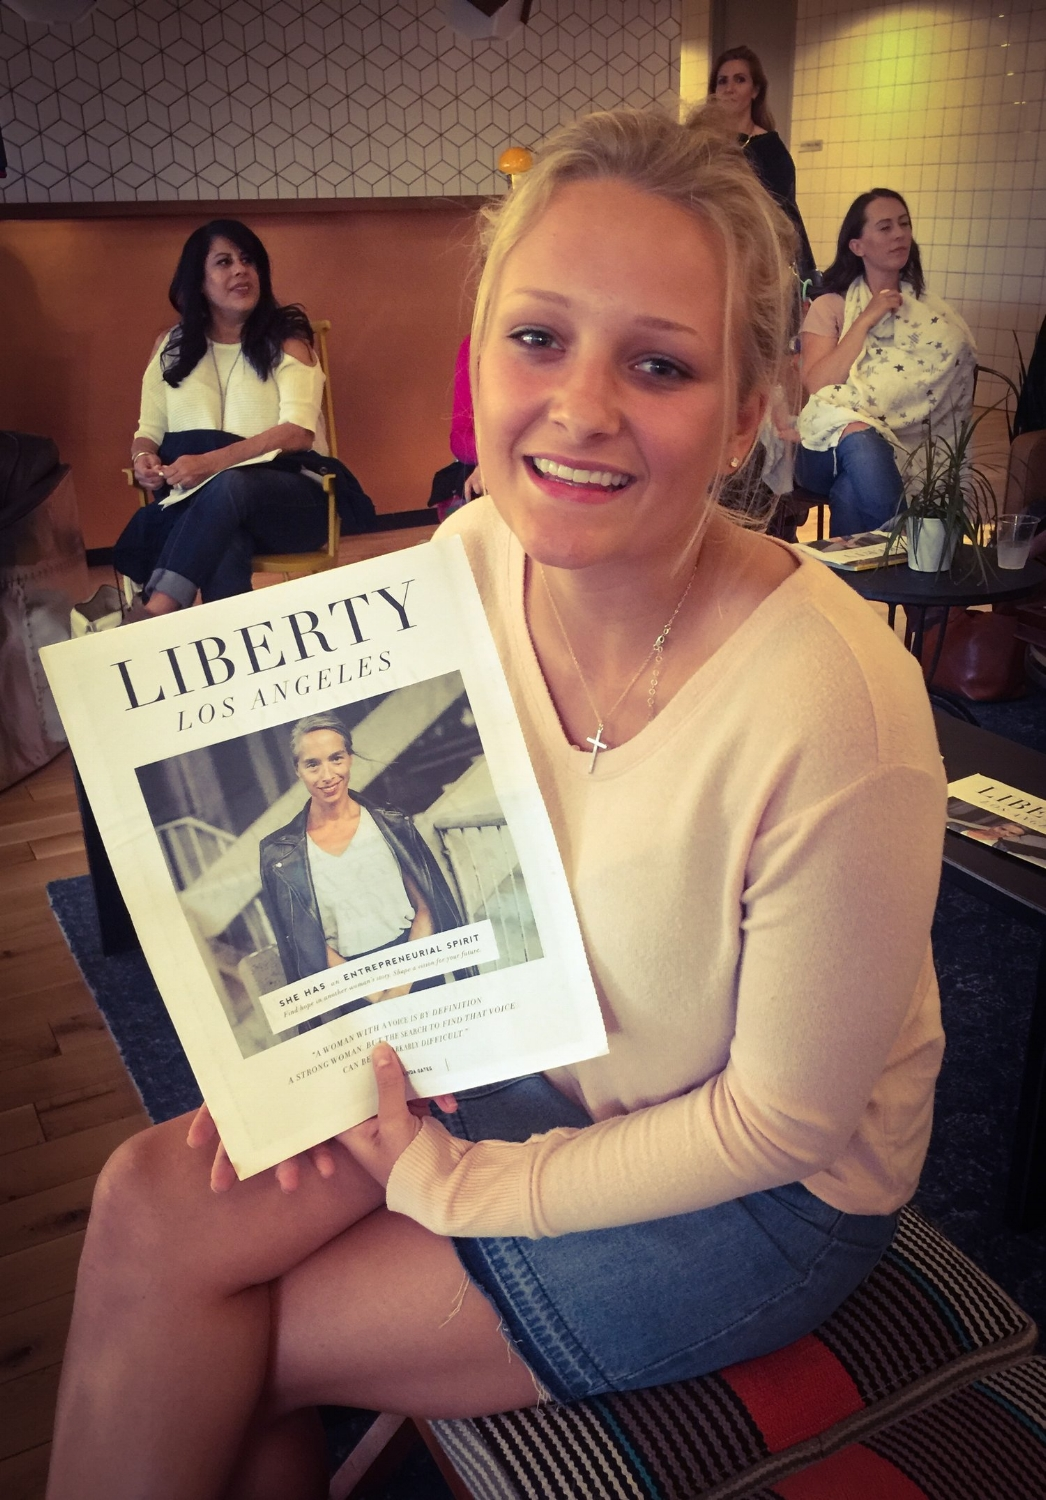 We named our daughter Liberty 17 years ago. She lives up to her name :)